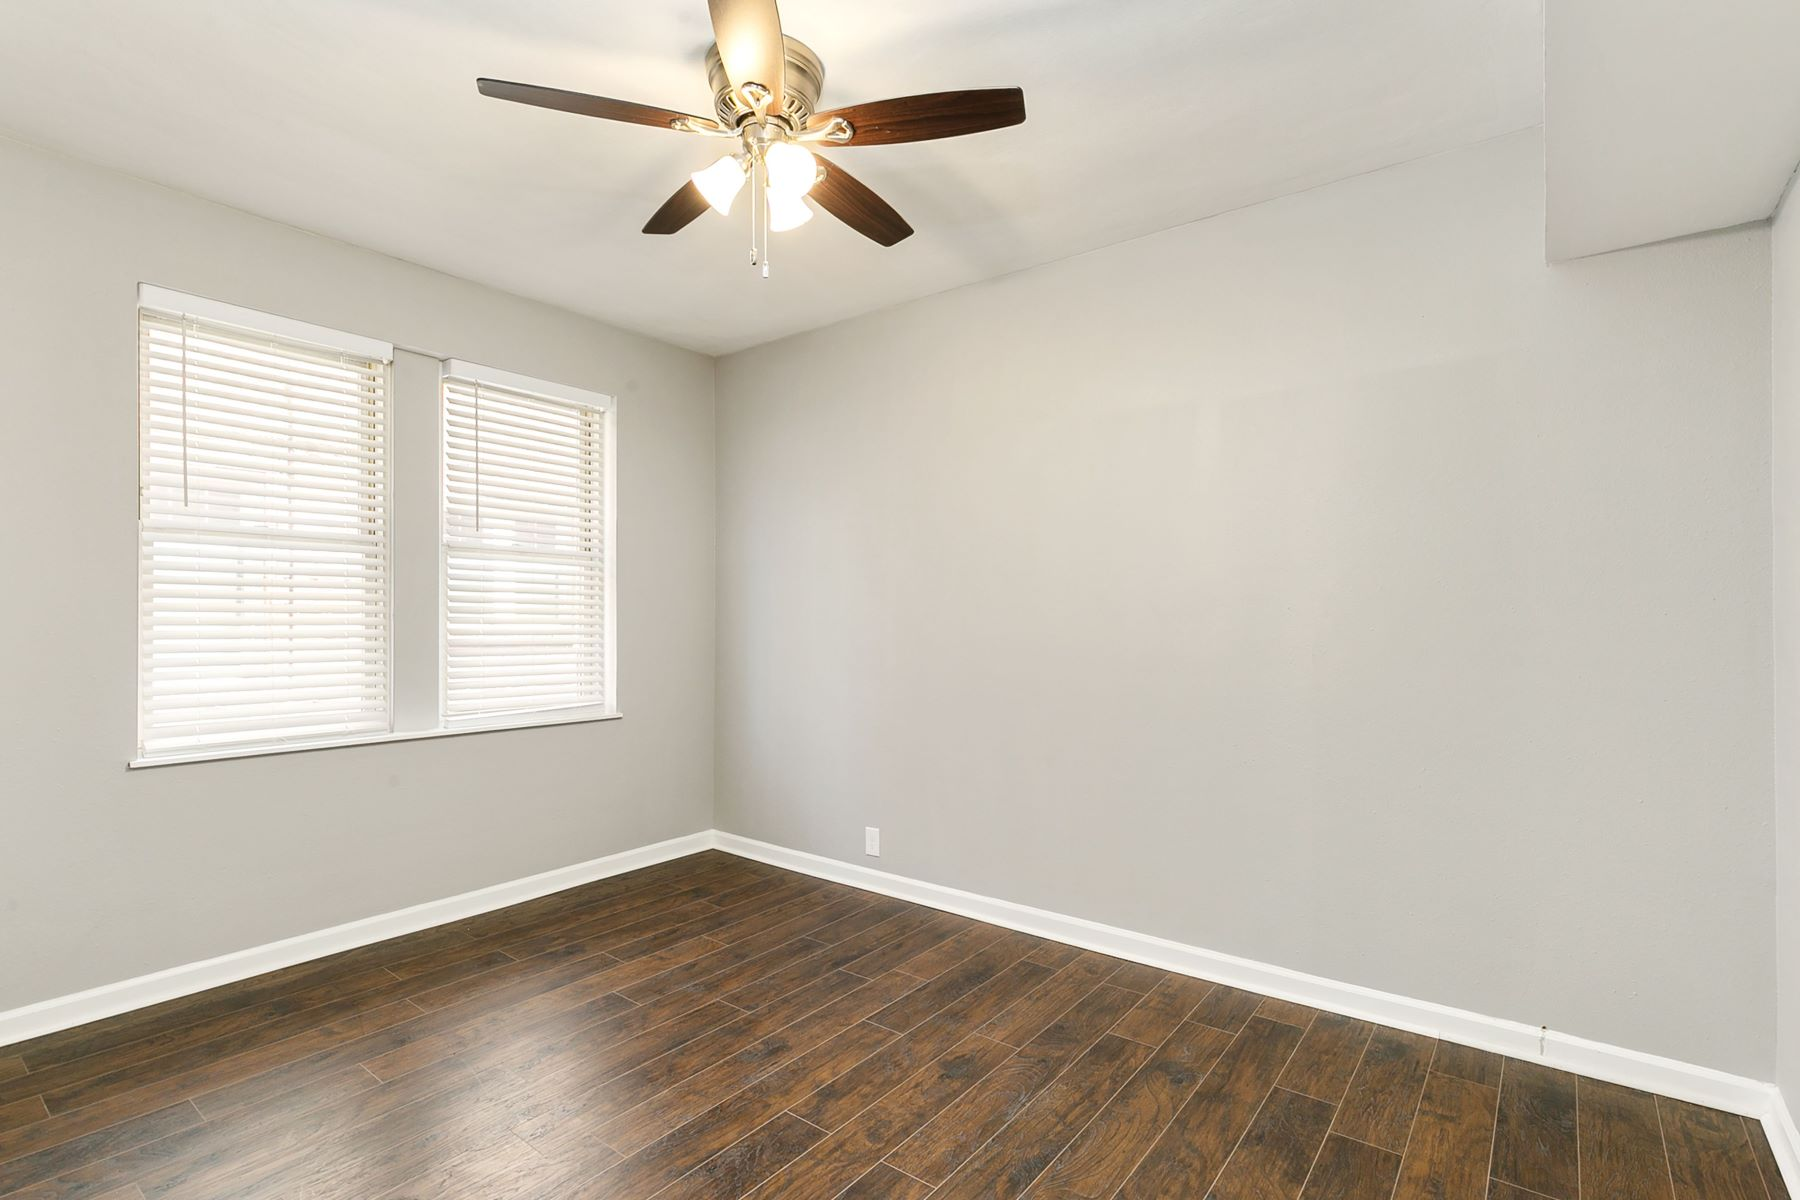 Additional photo for property listing at Fresh and newly-renovated 3 bedroom condo in Clayton! 907 South Hanley Road #3 Clayton, Missouri 63105 United States